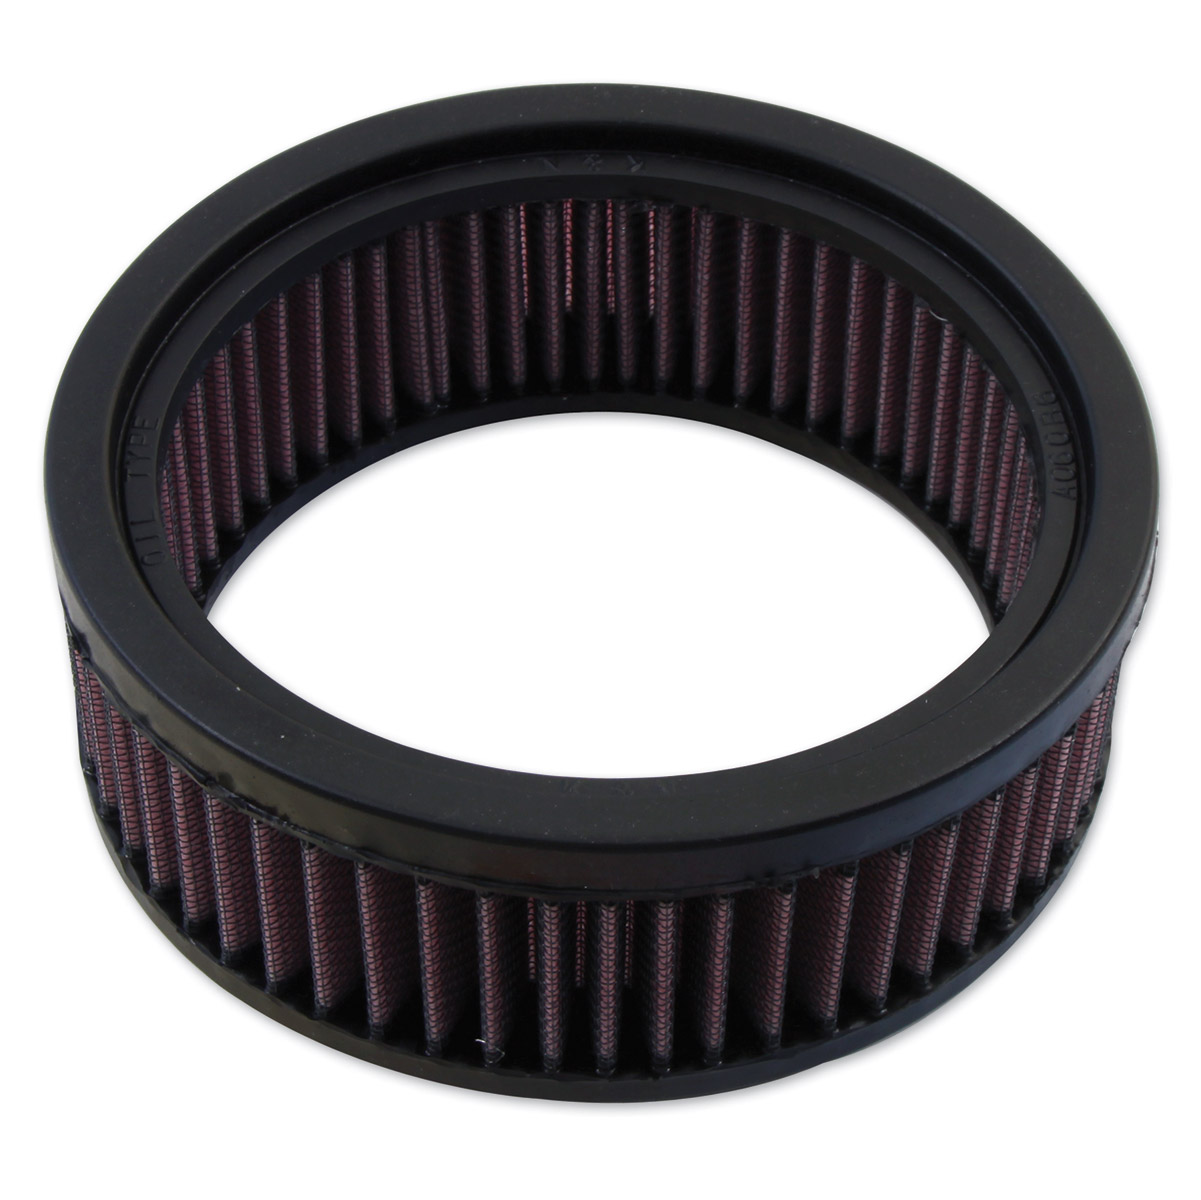 K&N High Performance Replacement Air Filter for S&S 'E' and 'G' Air Cleaners